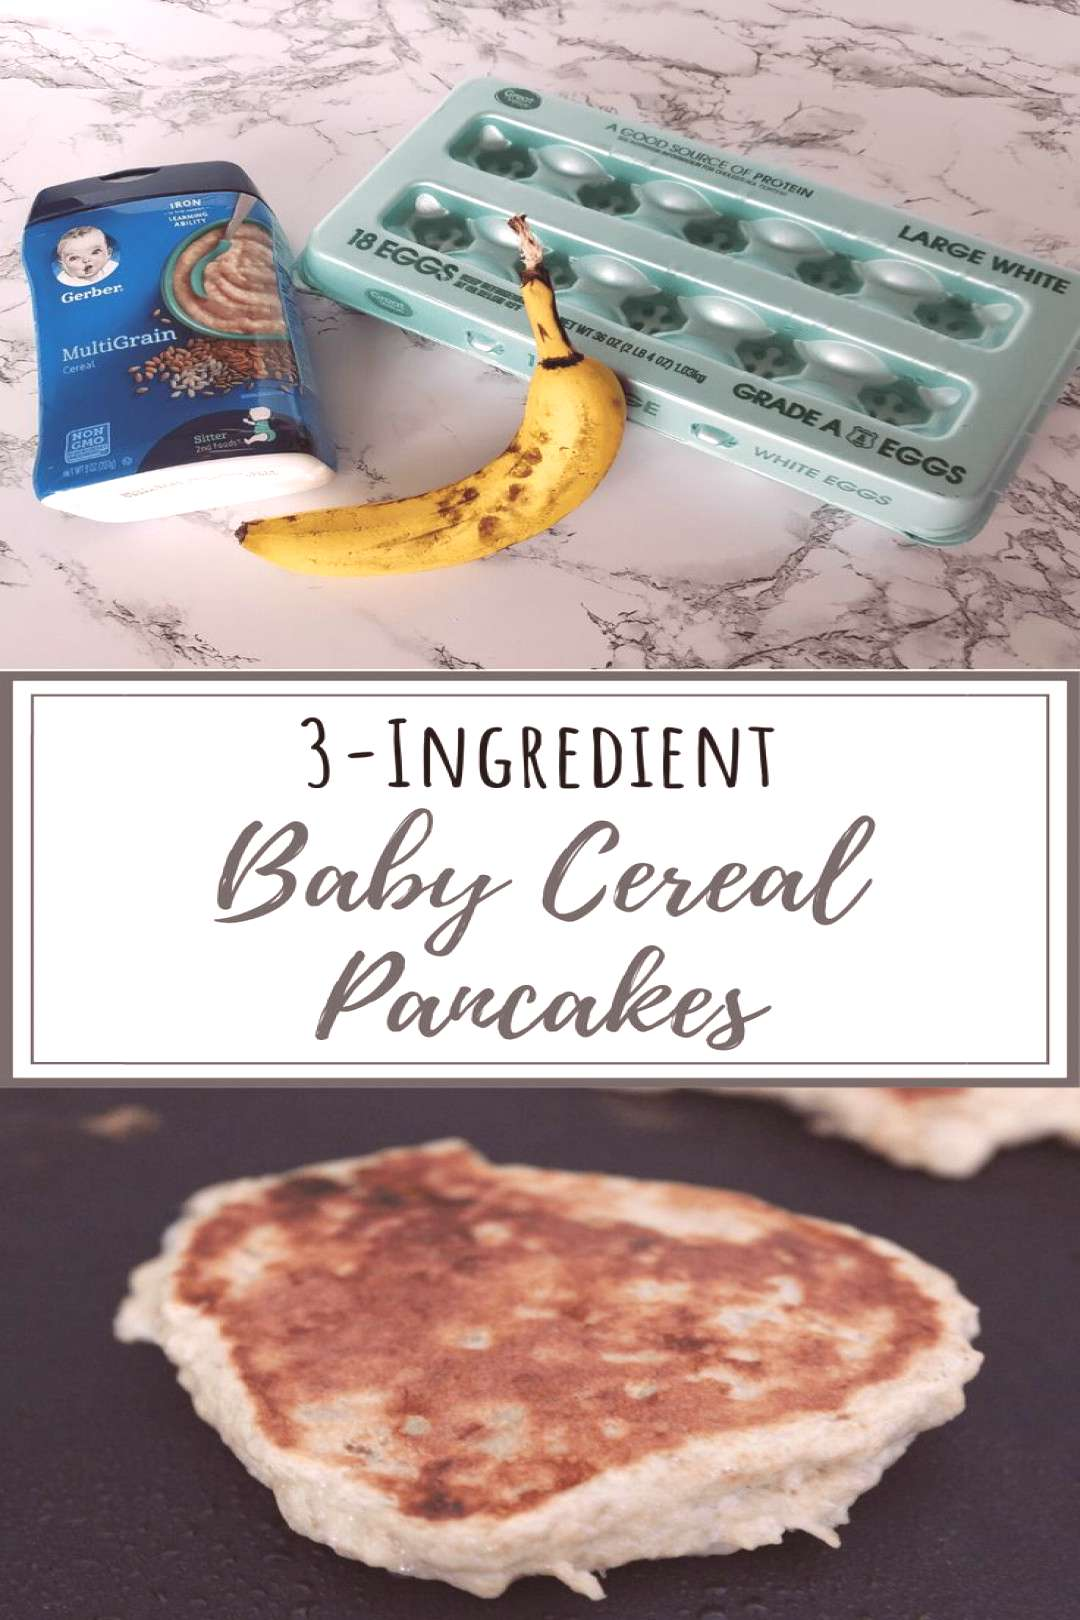 Easy Baby Cereal Pancakes Three-Ingredient Banana and Egg Pancakes These easy baby pancakes are ma